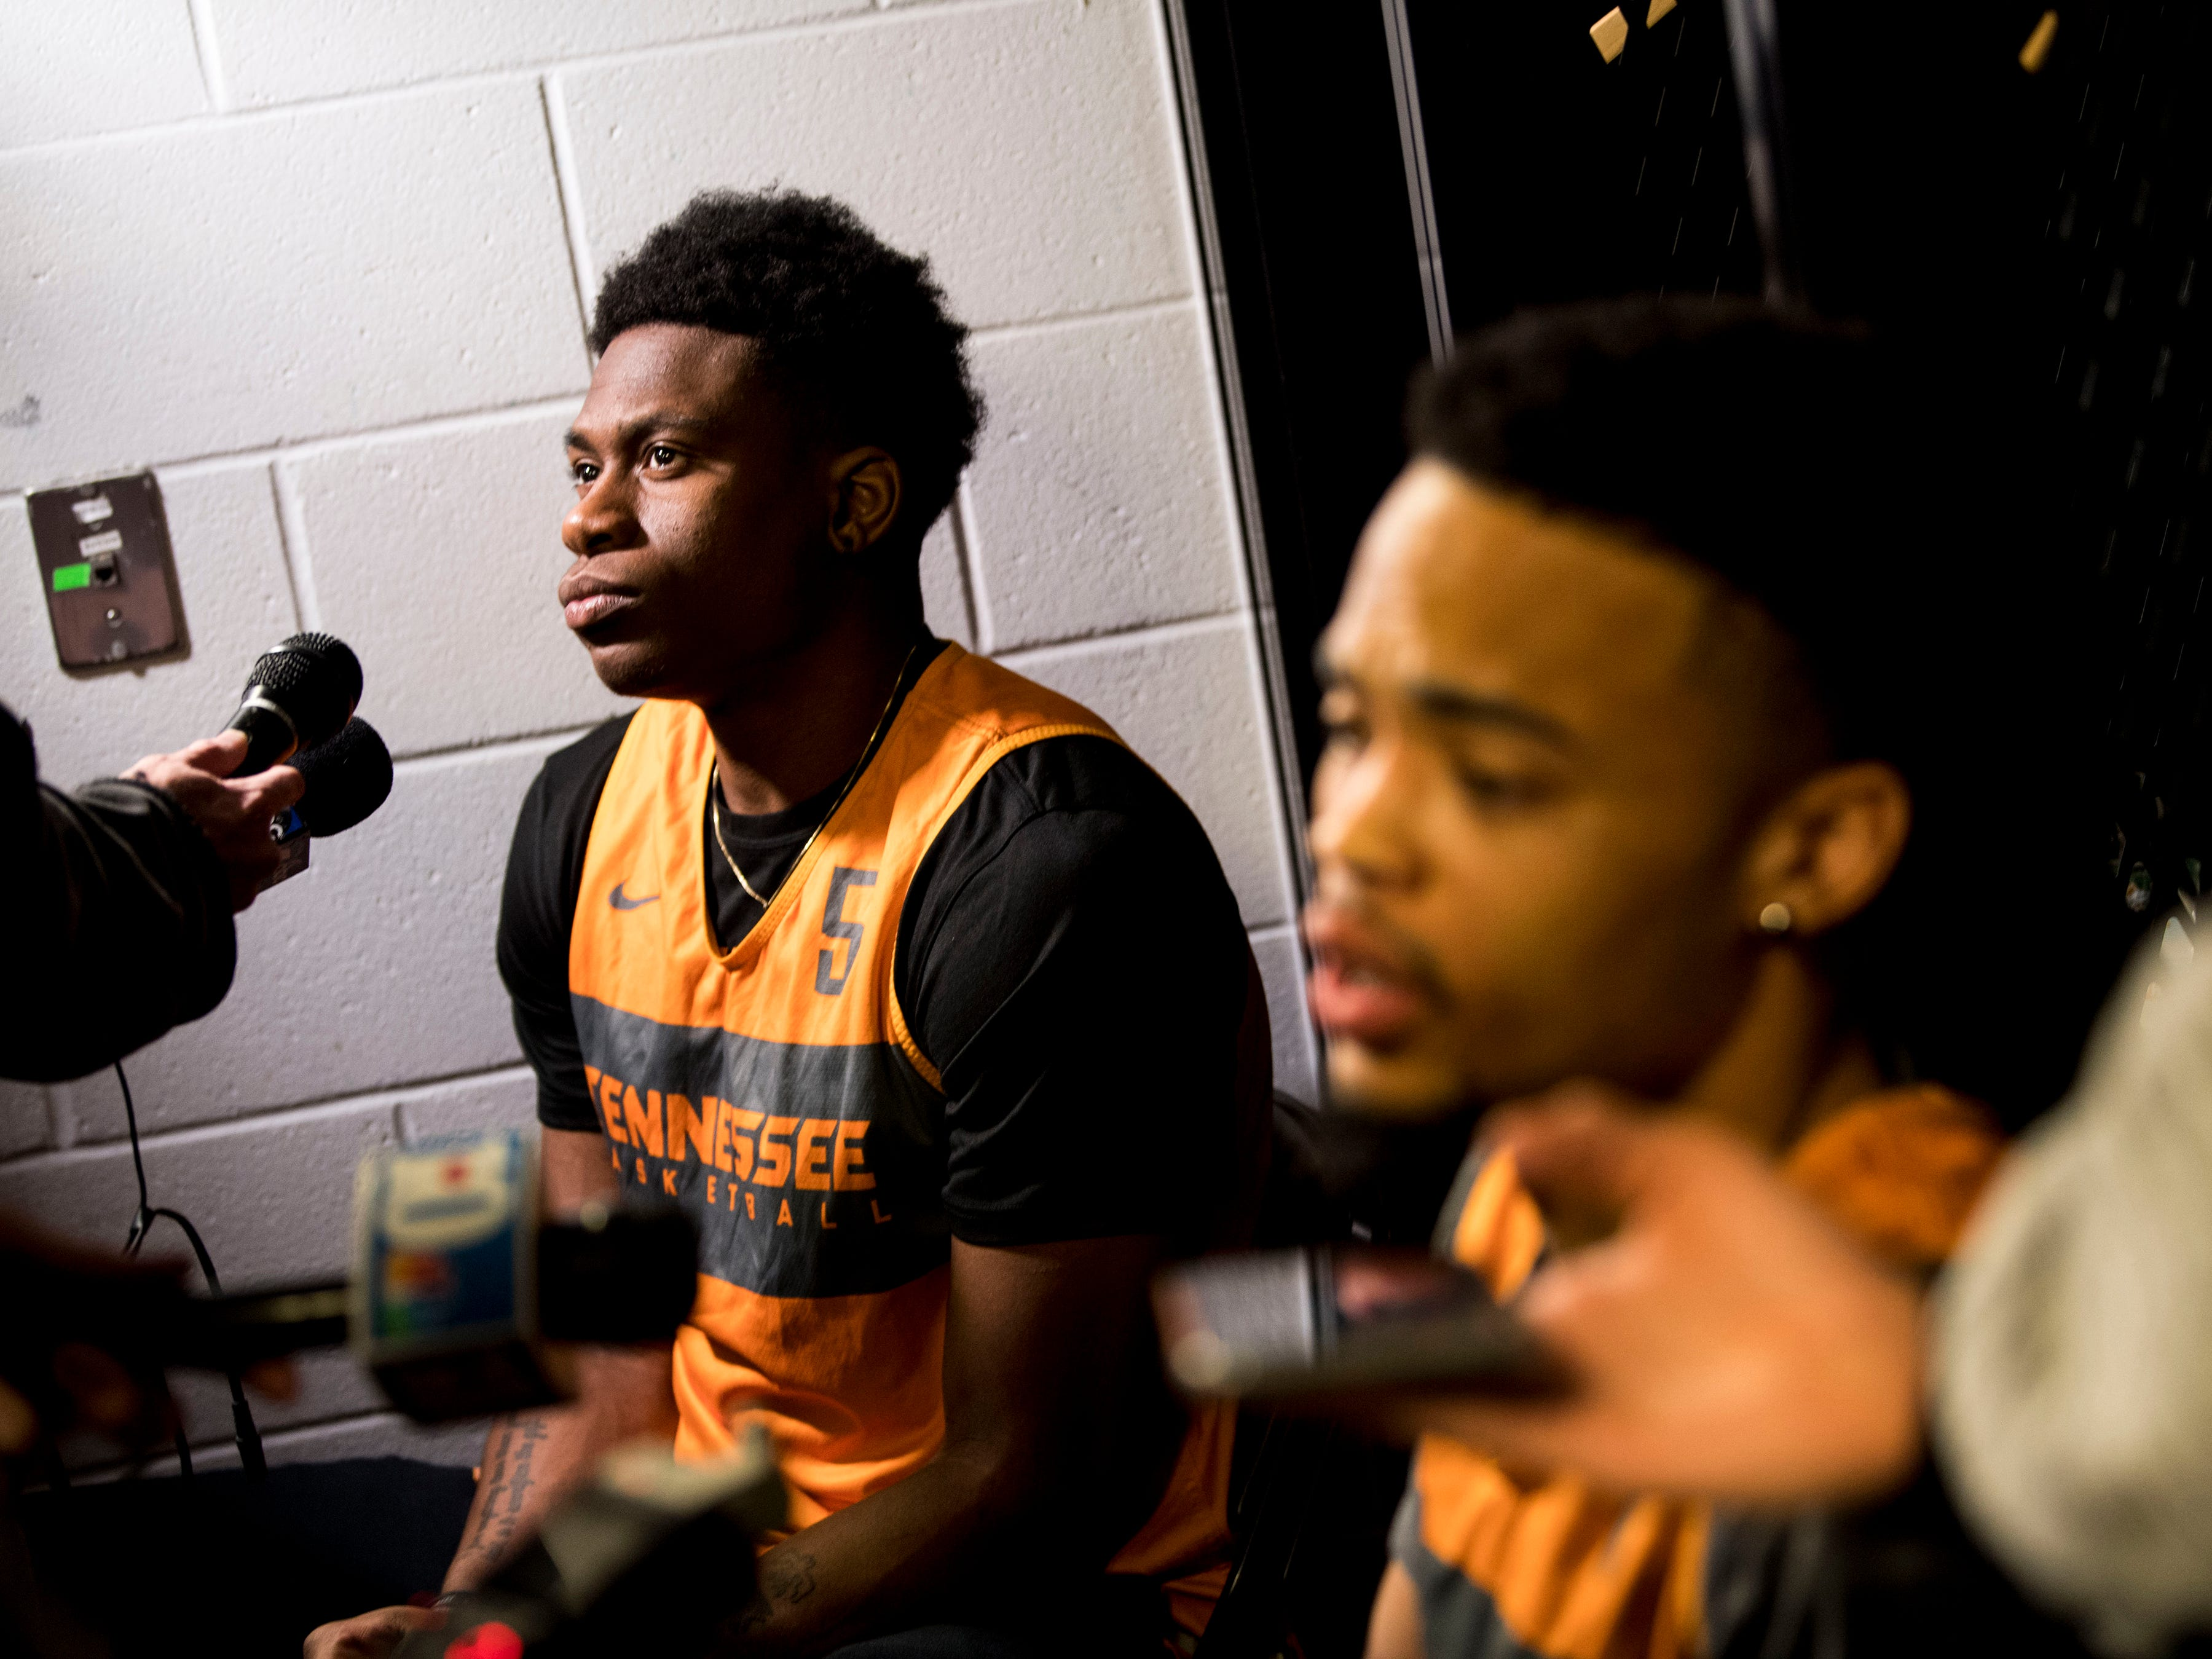 Tennessee guard Admiral Schofield (5), left, and Tennessee guard Lamonte Turner (1) speak with members of the media on Saturday, March 23, 2019, before the Tennessee Volunteers and Iowa Hawkeyes compete against one another in the second round of the NCAA Tournament held at Nationwide Arena in Columbus, Ohio, on Sunday, March 24, 2019.